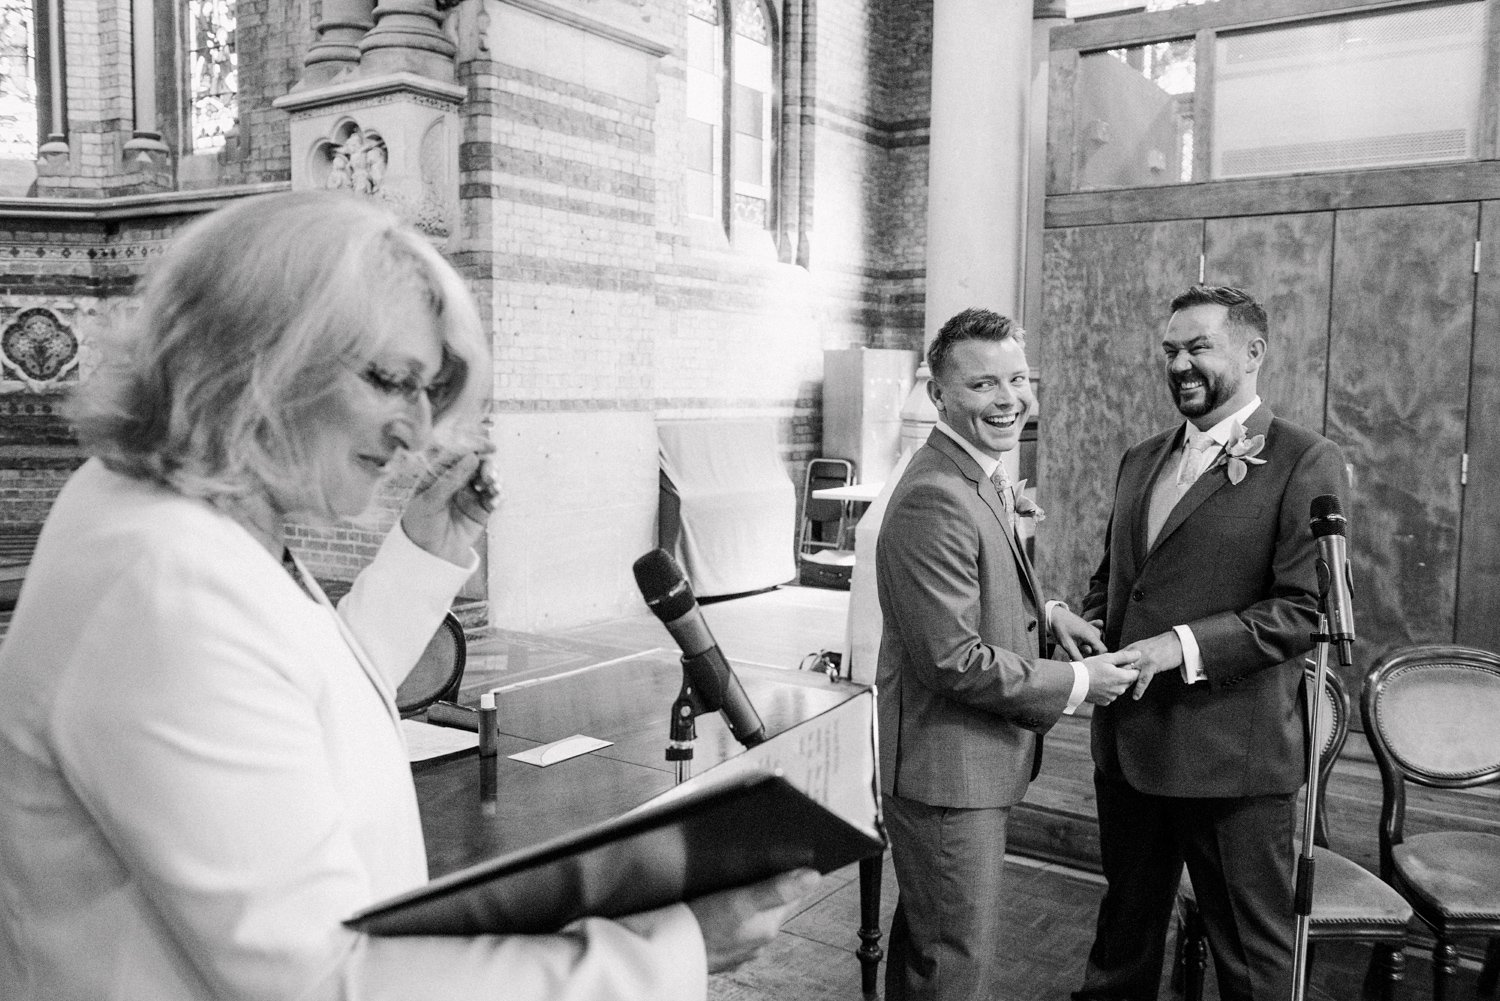 st-stephens-rosslyn-hill-wedding-photography-13